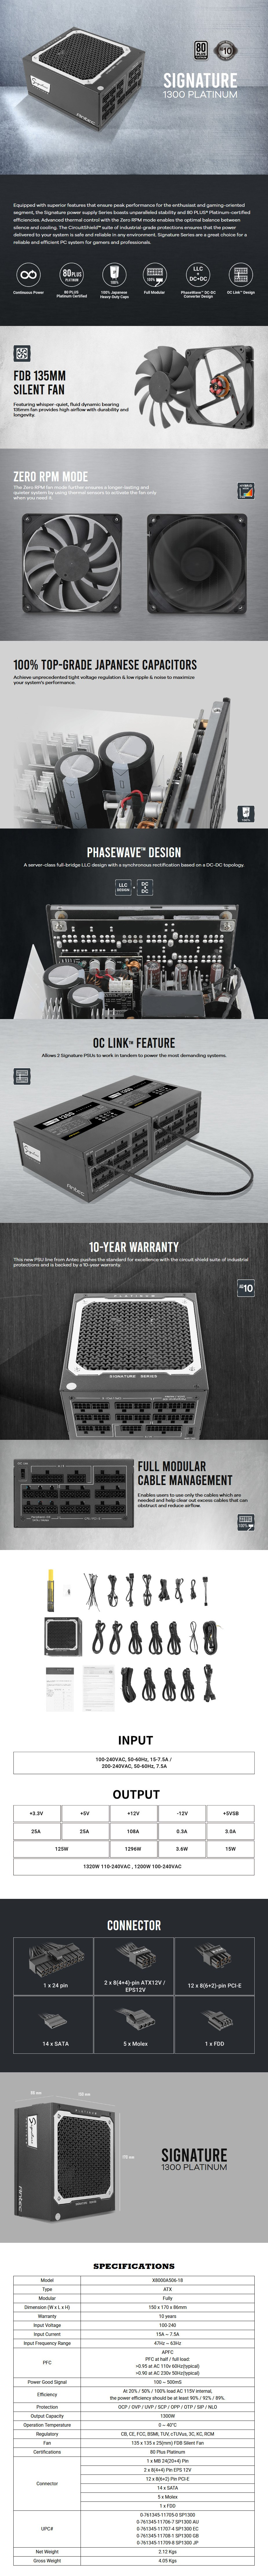 Antec Signature 1300W 80+ Platinum Fully Modular Power Supply - Overview 1